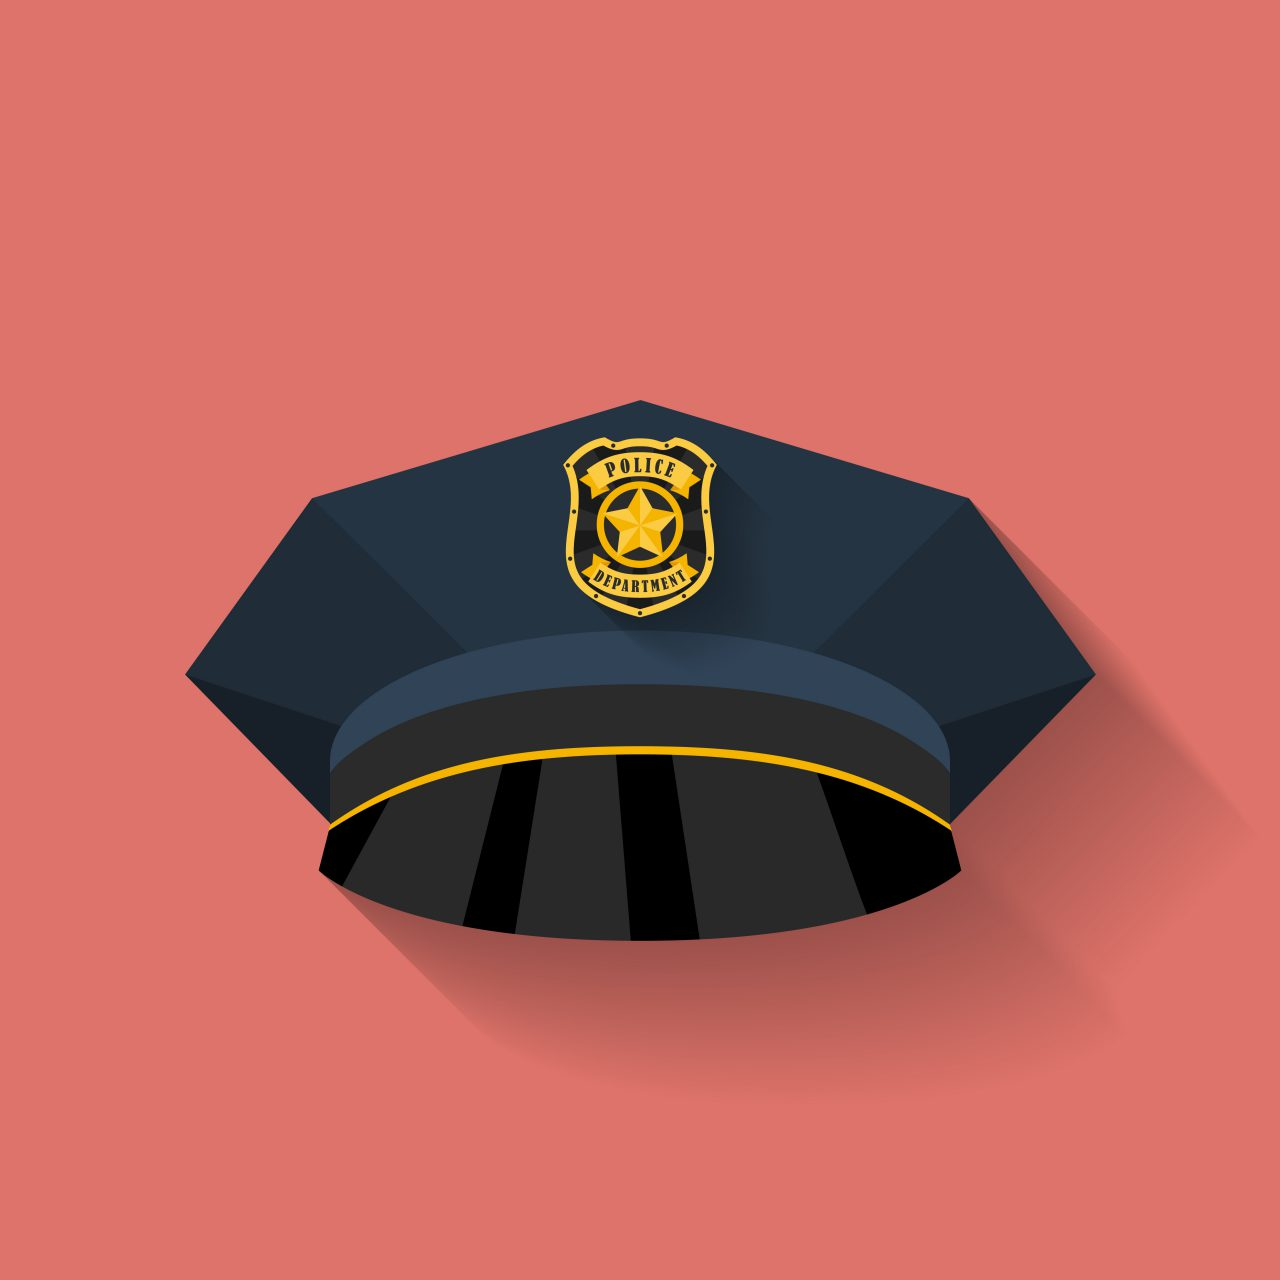 To Defend and Protect: What About the Police?